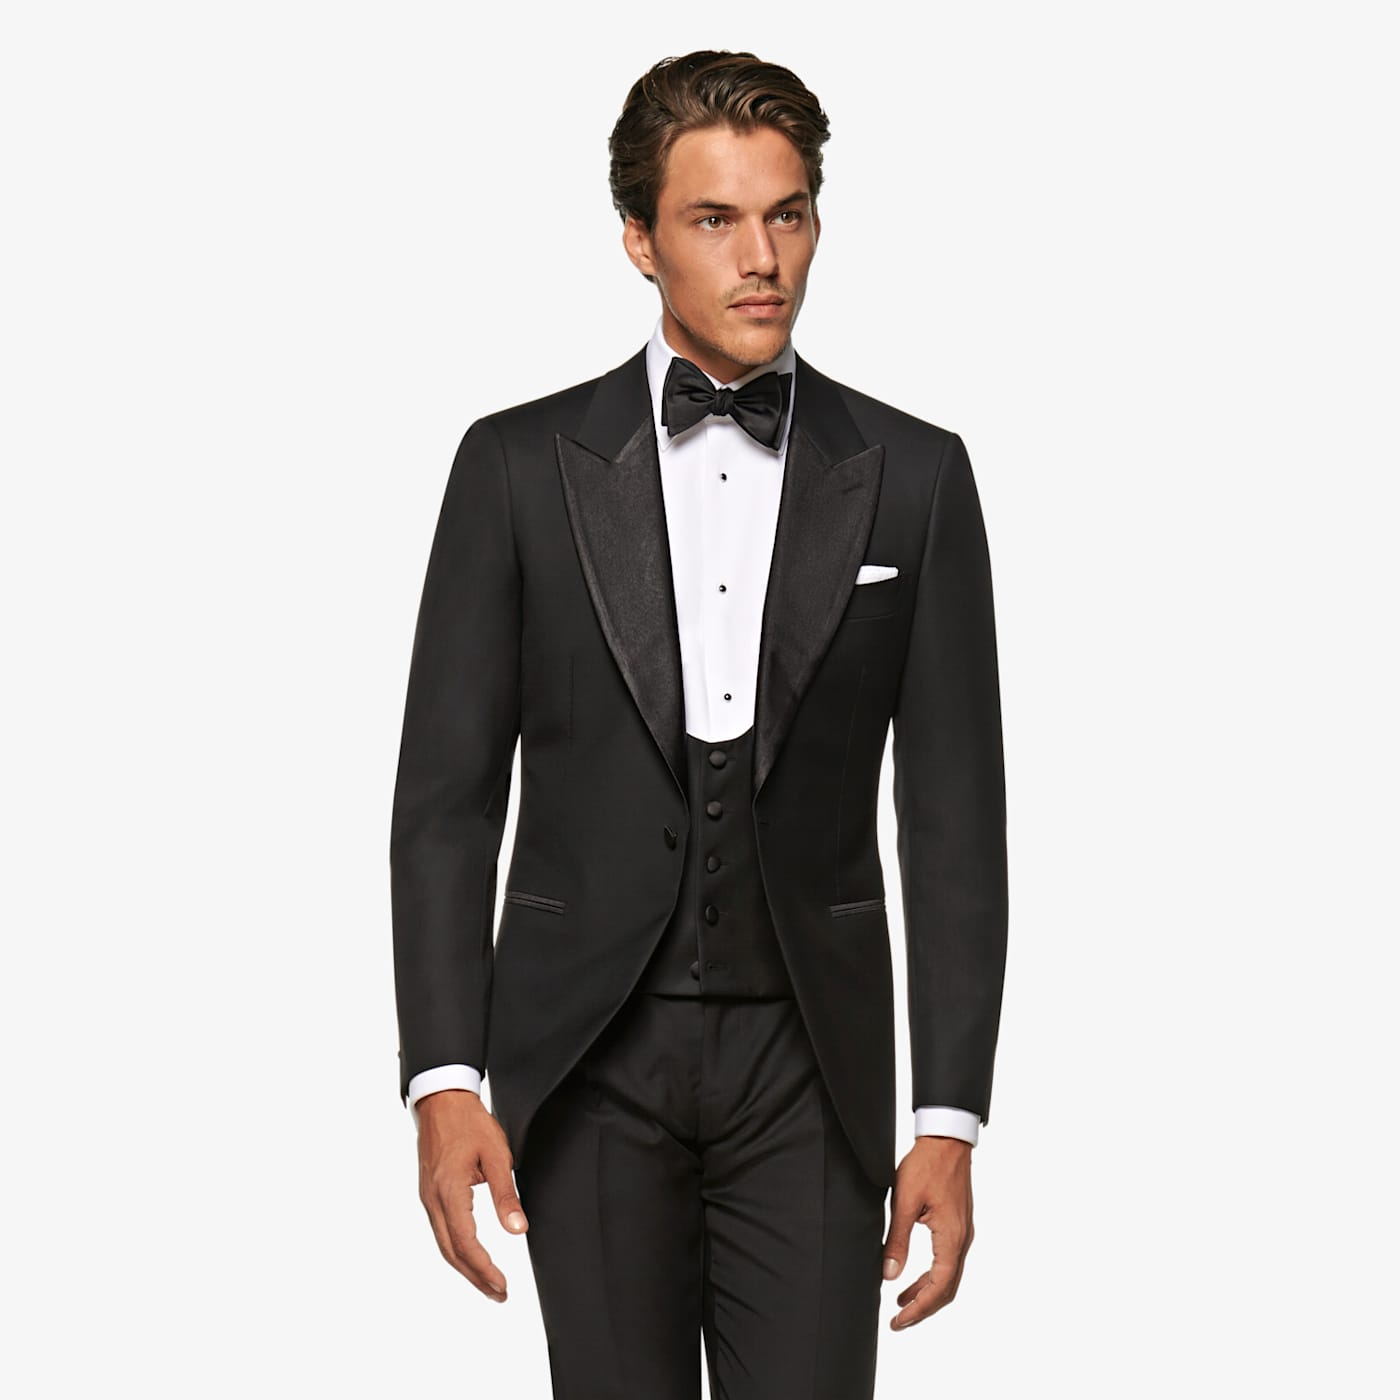 Edwardian Titanic Men's Formal Tuxedo Guide Black Waistcoat $139.00 AT vintagedancer.com